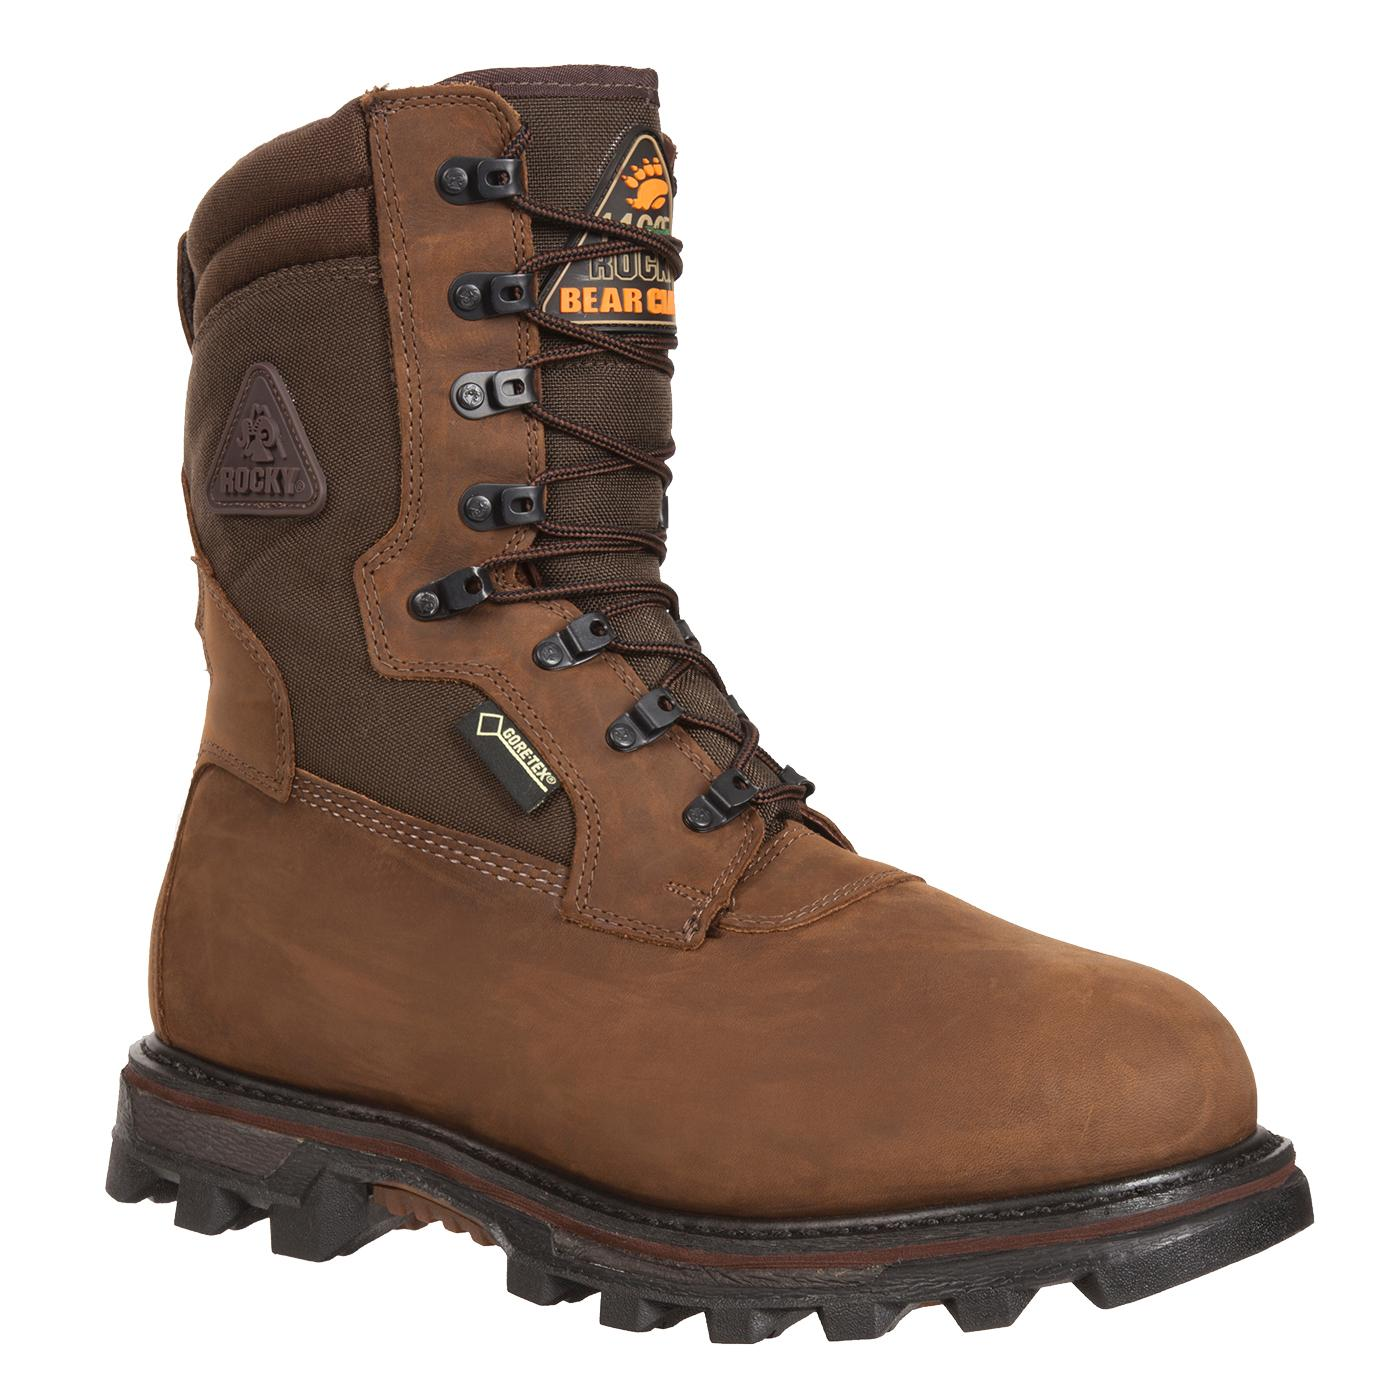 926fb8cd8b2 Rocky Arctic BearClaw GORE-TEX® Waterproof Hunting Boot